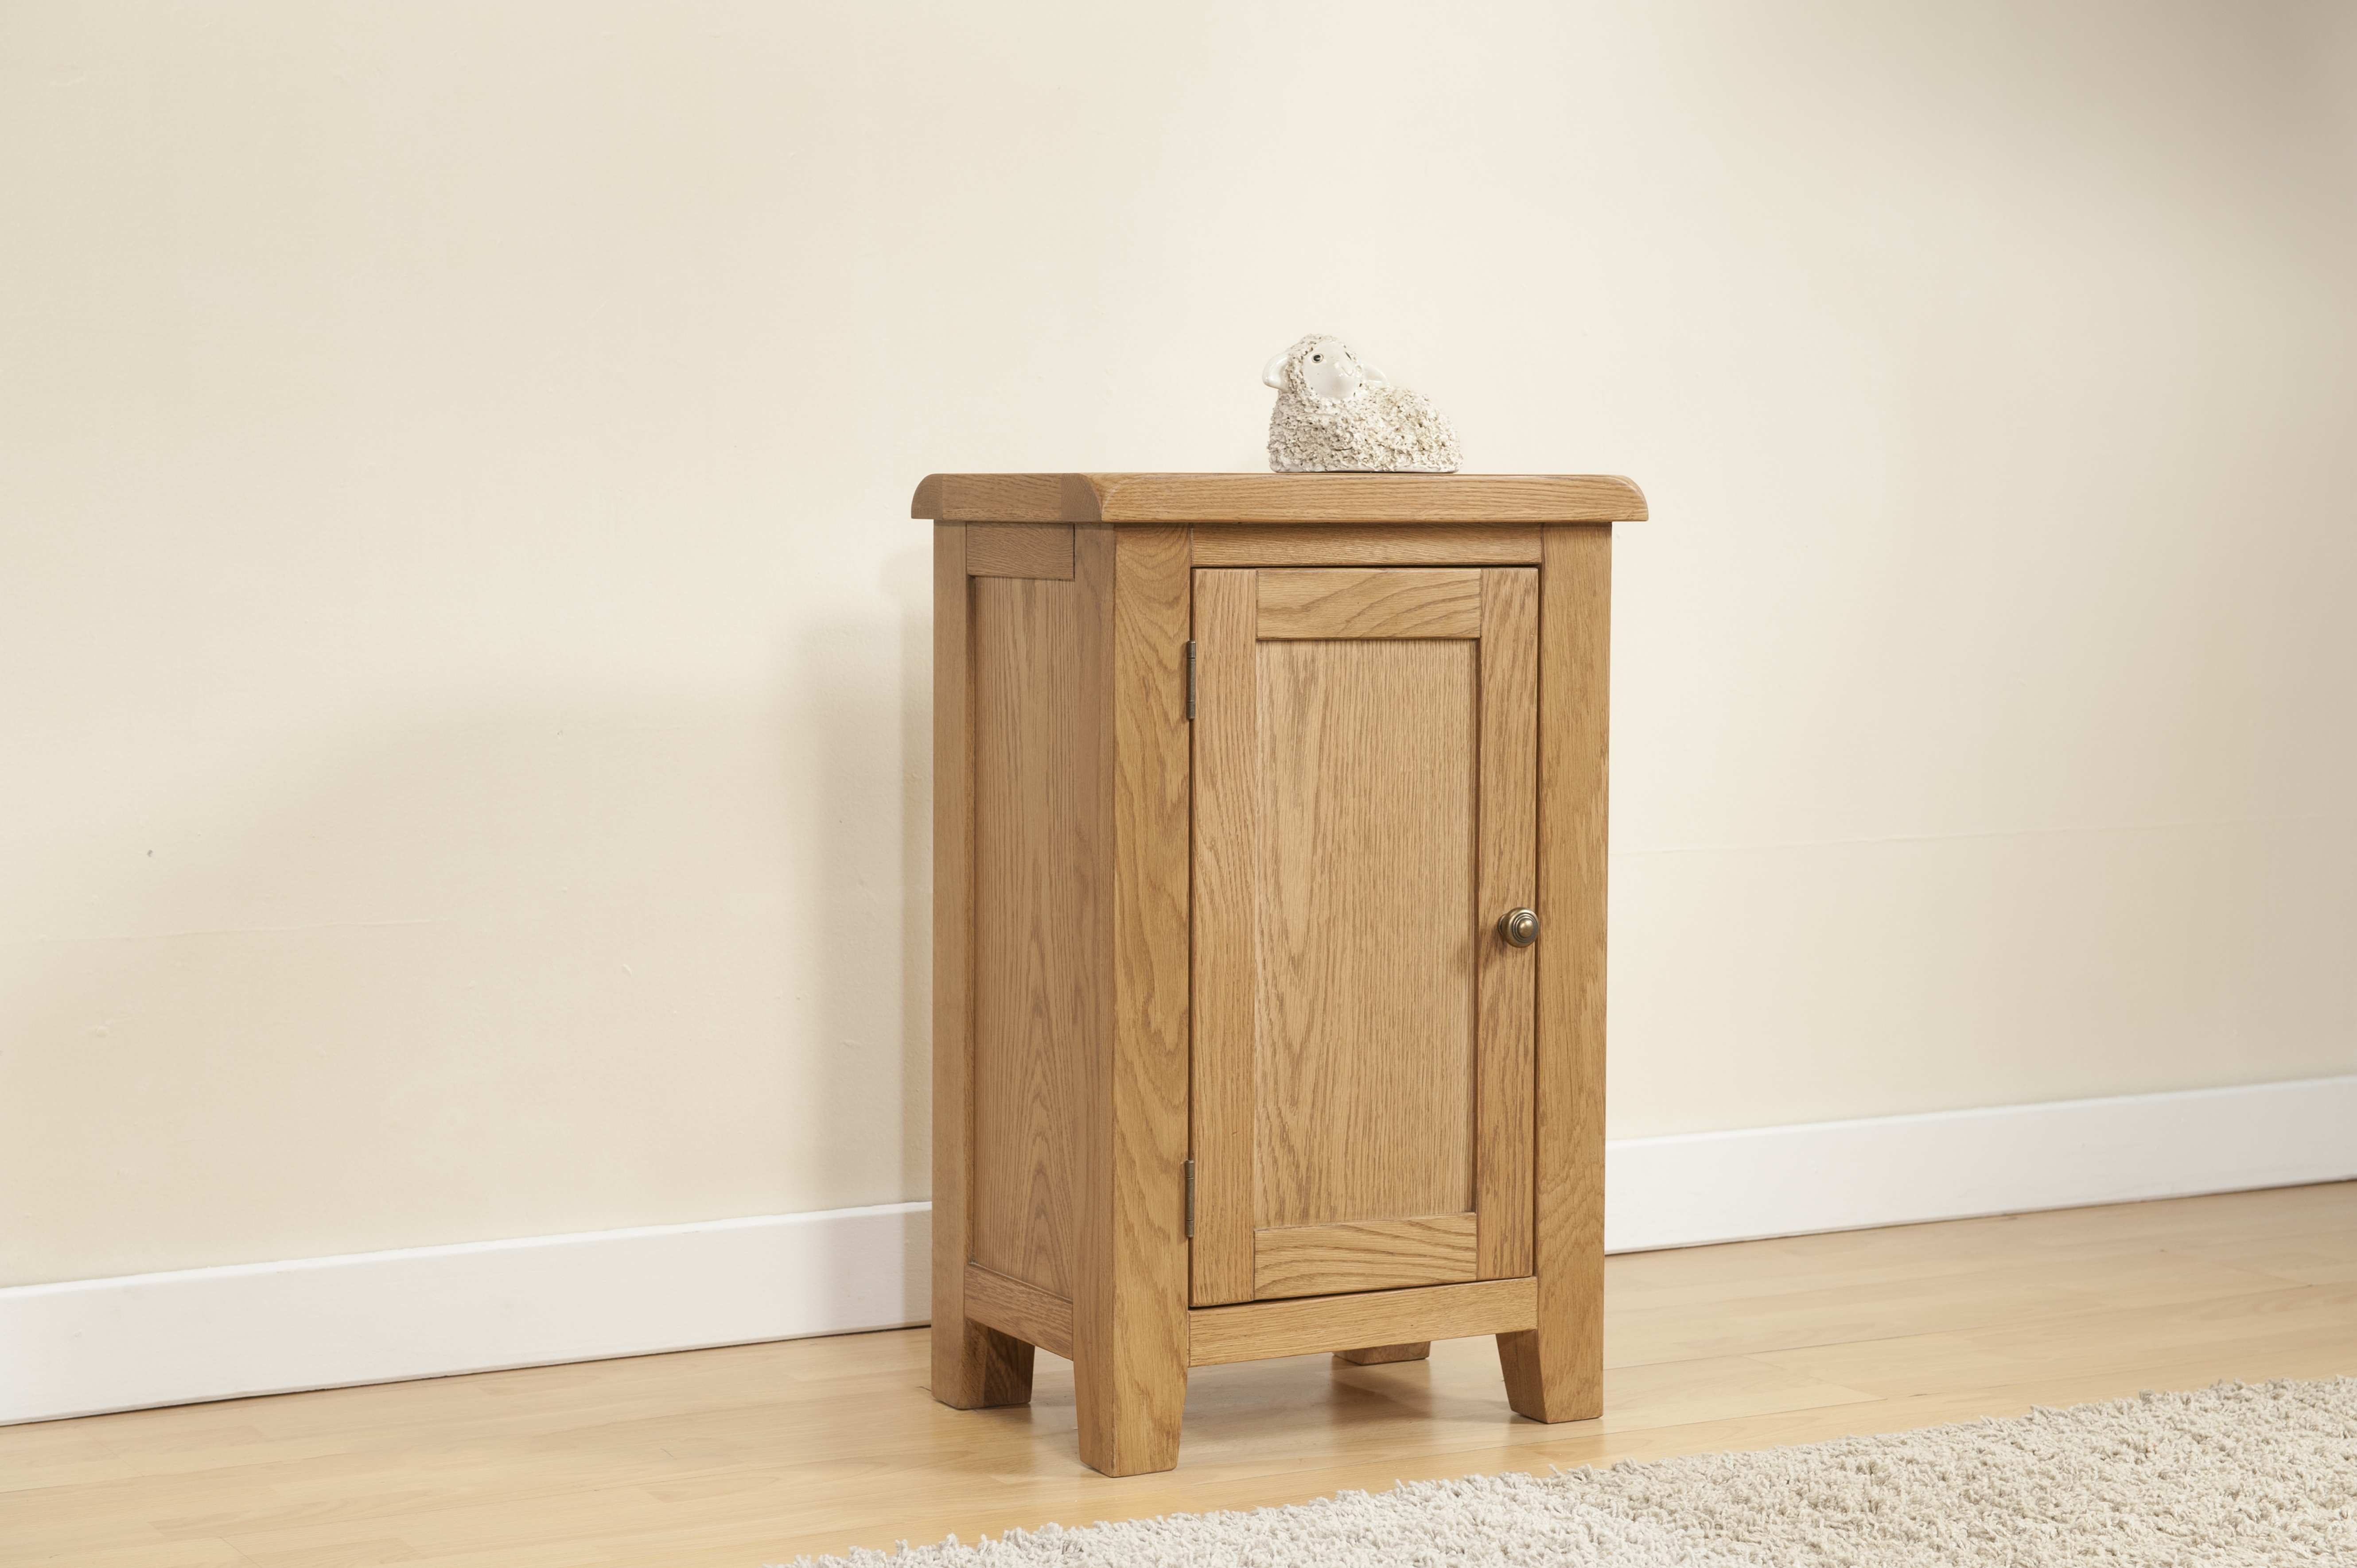 Favorite Small Oak Cupboard Throughout Shrewsbury Oak Small Cabinet With 1 Door (View 12 of 15)